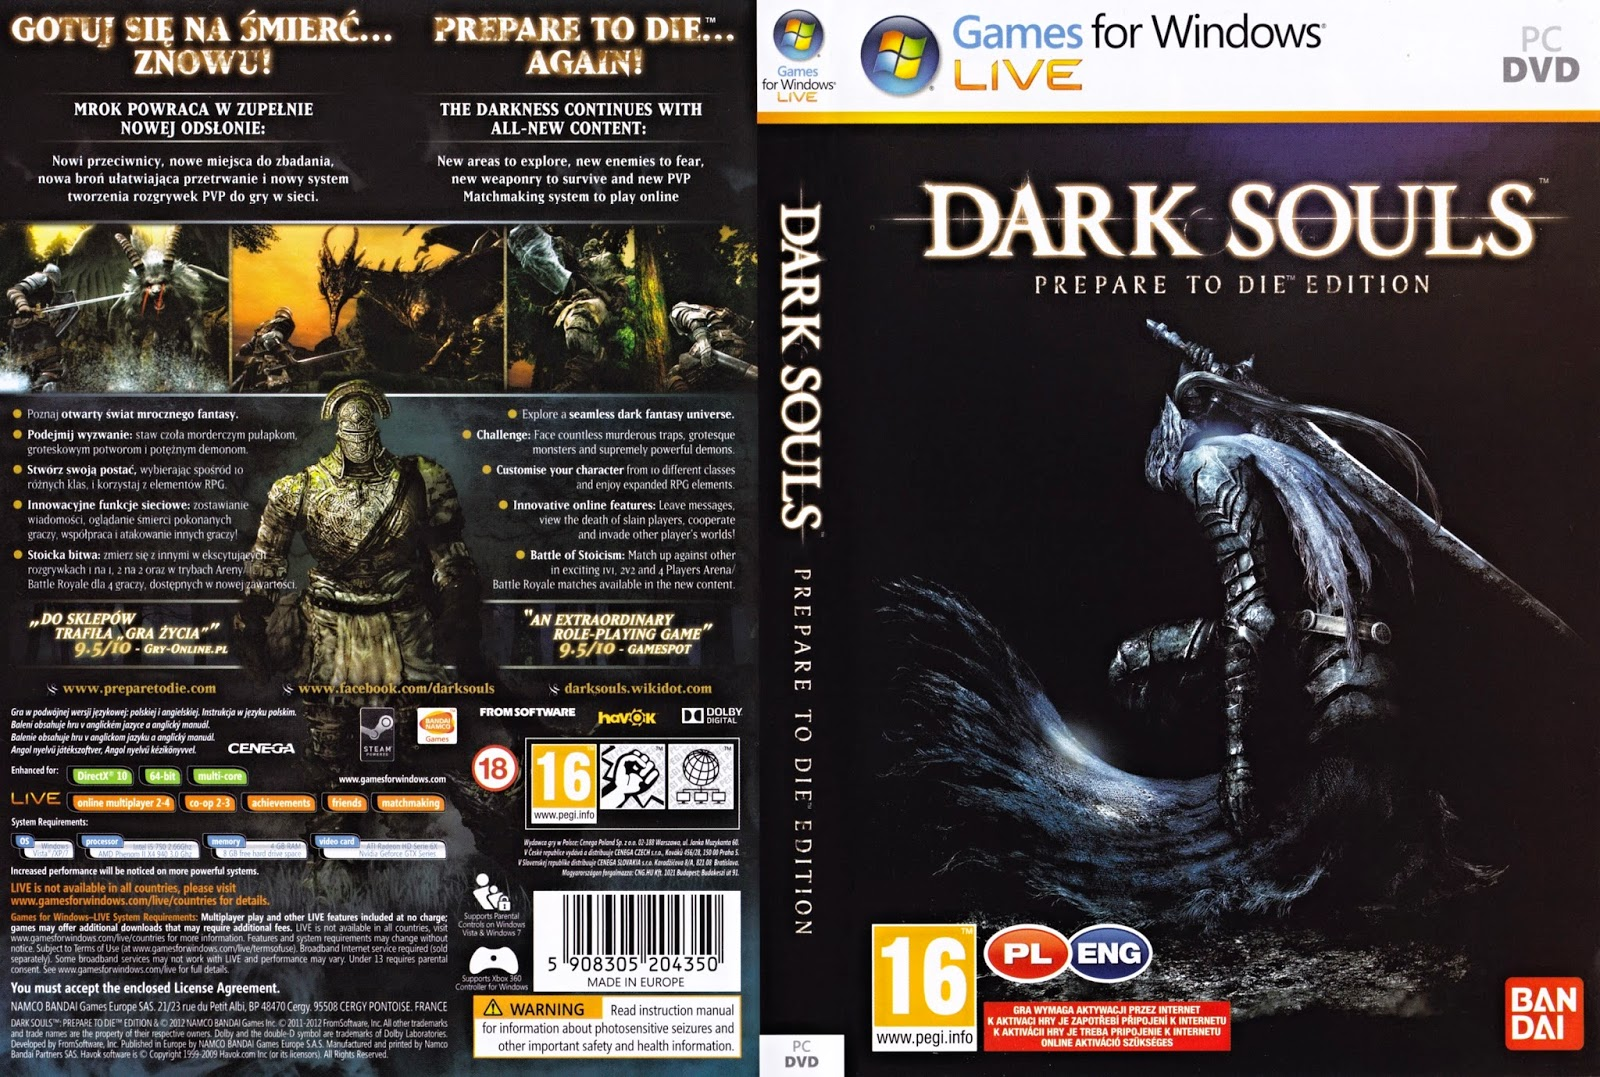 Dark Souls (Prepare to Die Edition) PC Game ISO Direct ...